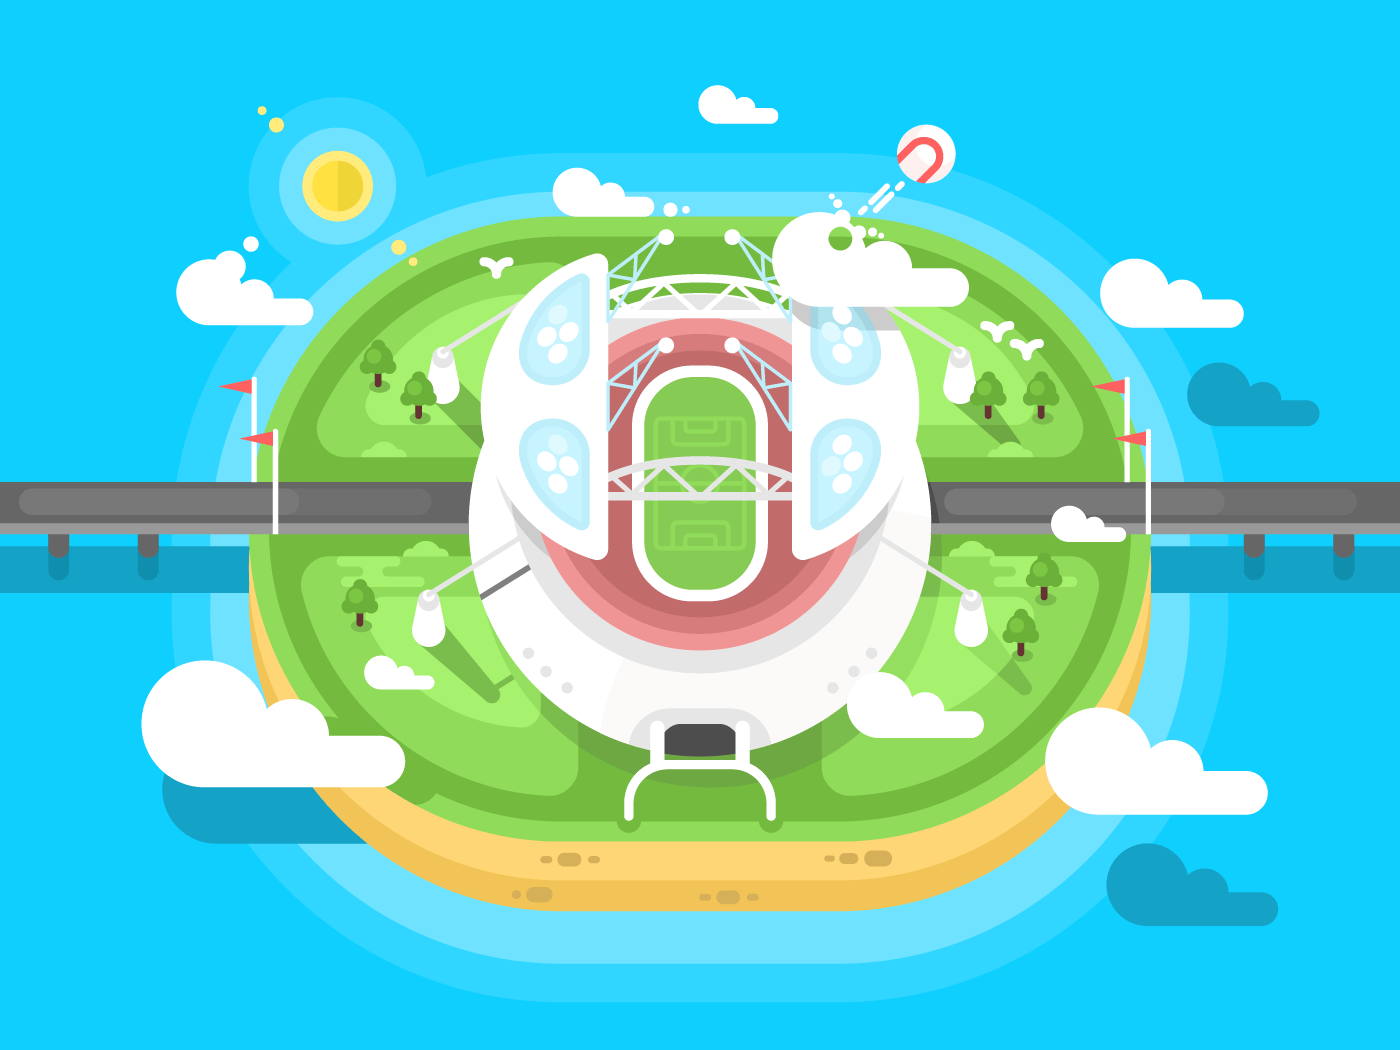 Stadium flat vector illustration